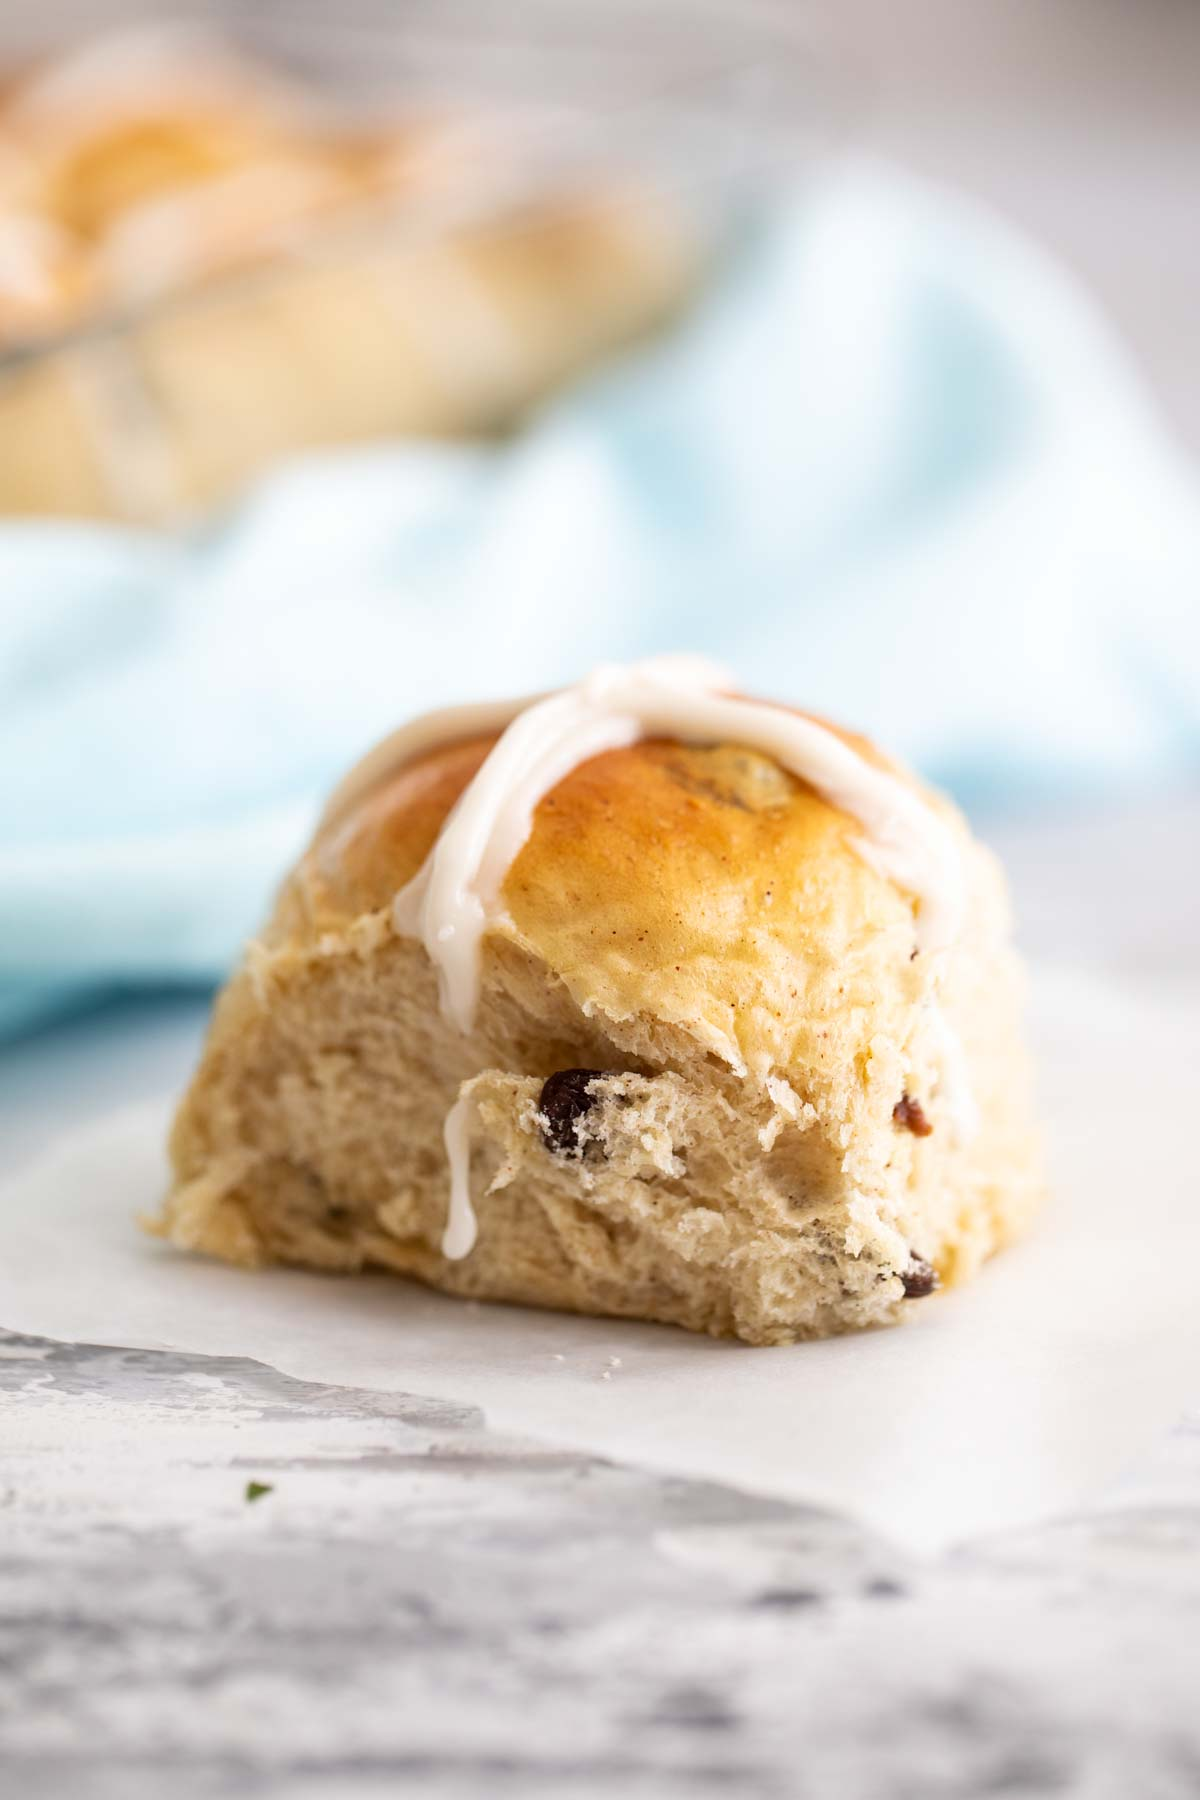 single hot cross bun on parchment paper